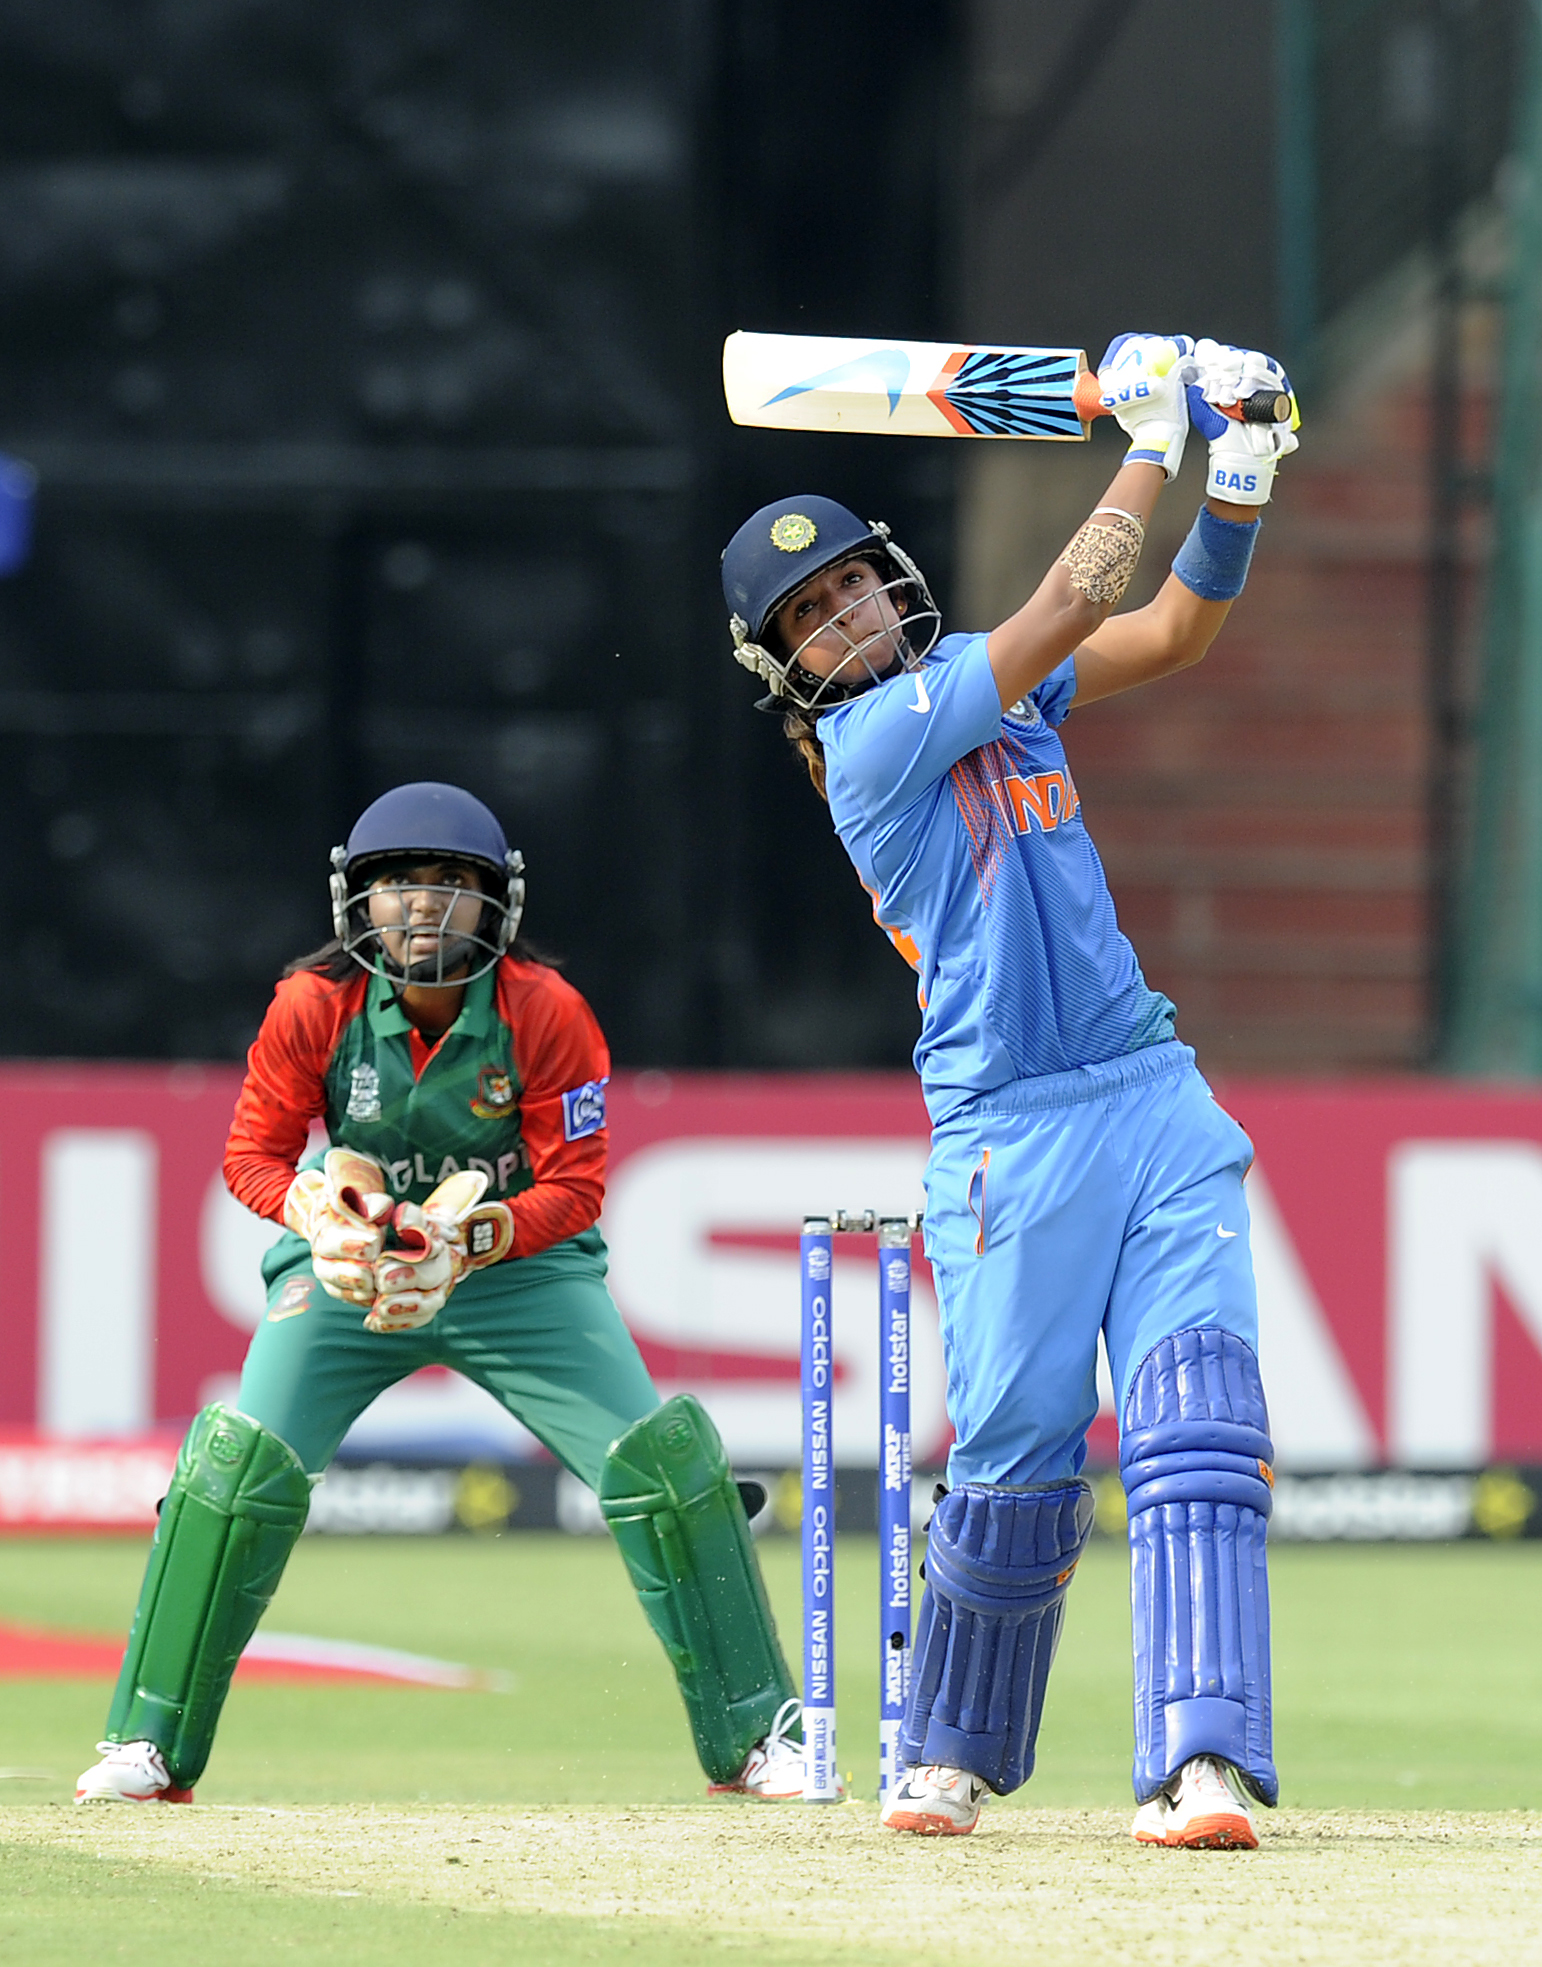 Bangalore, INDIA - MARCH 15 : Harmanpreet Kaur of India bats during the Women's ICC World Twenty20 India 2016 match between India and Bangladesh at the Chinnaswamy stadium on March 15, 2016 in Bangalore, India. (Photo by Pal Pillai/IDI via Getty Images)..